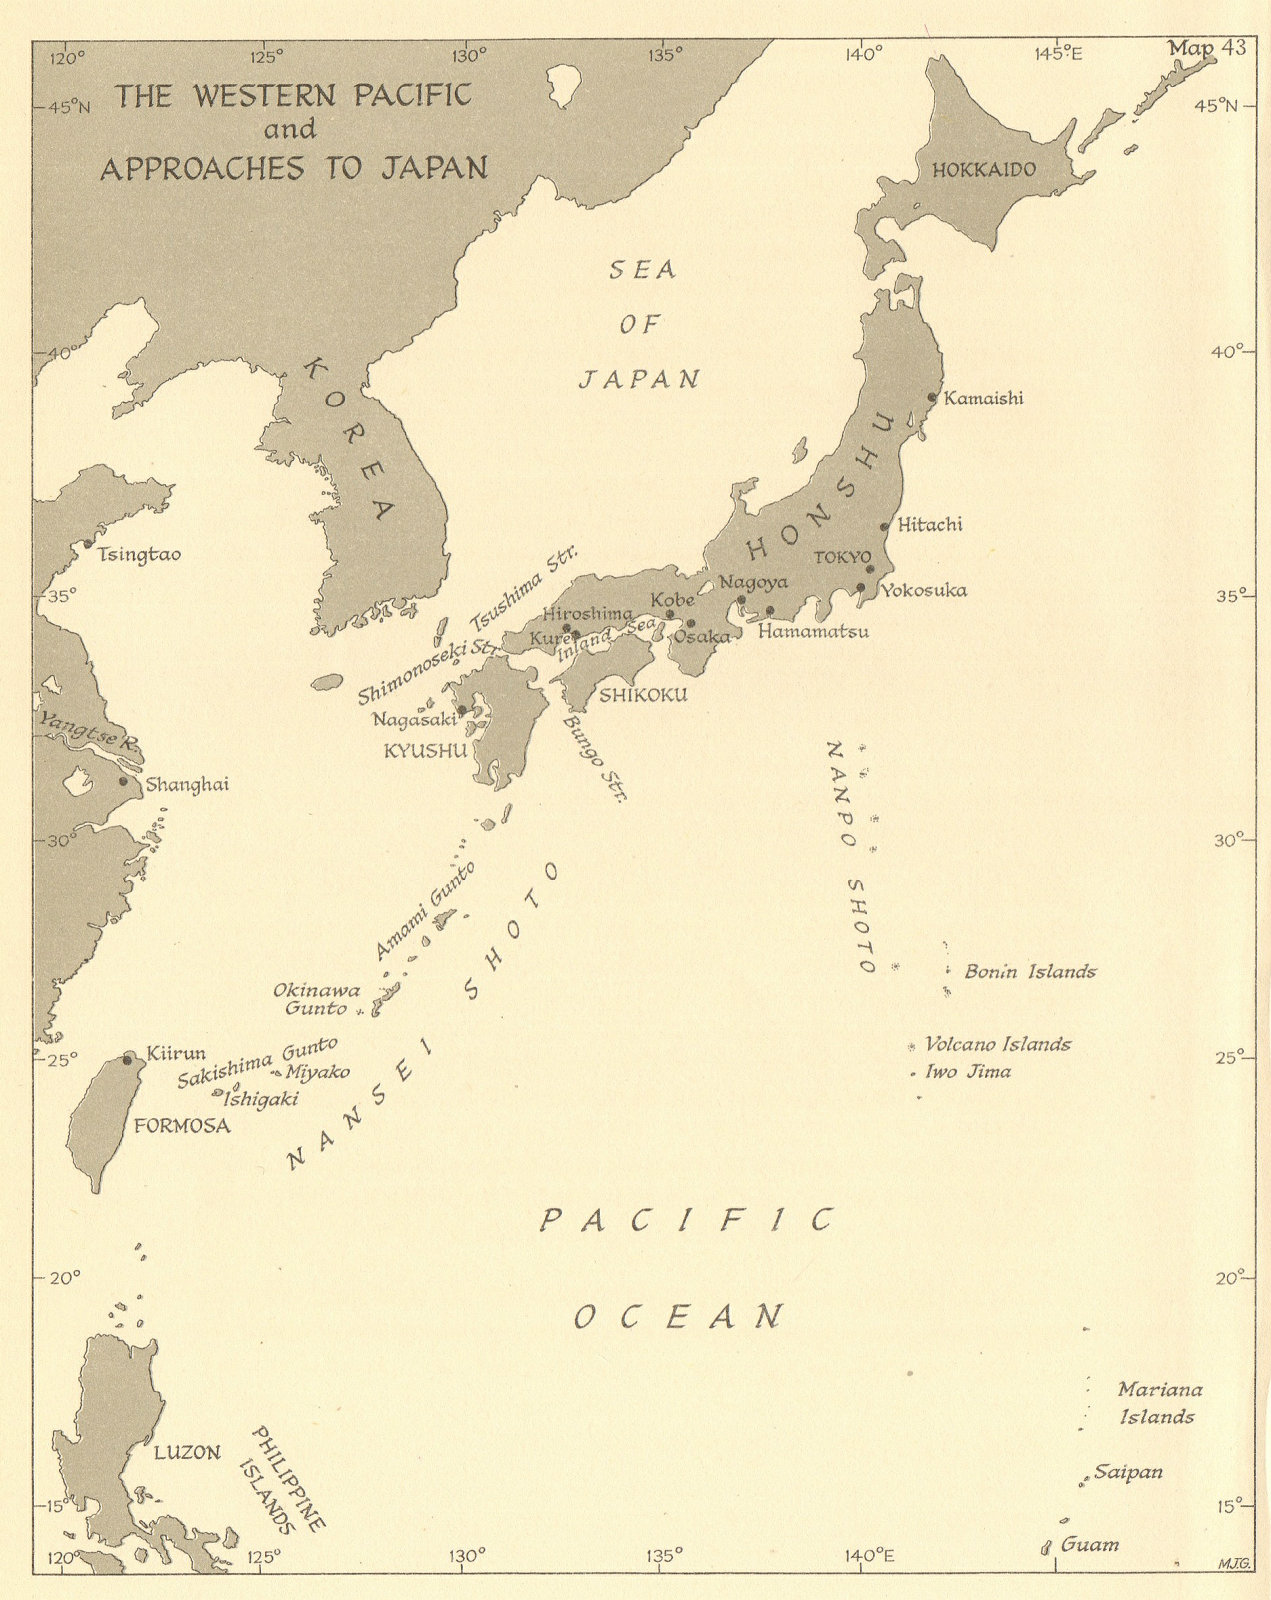 Associate Product Western Pacific & approaches to Japan in 1945. World War 2 naval ops 1961 map